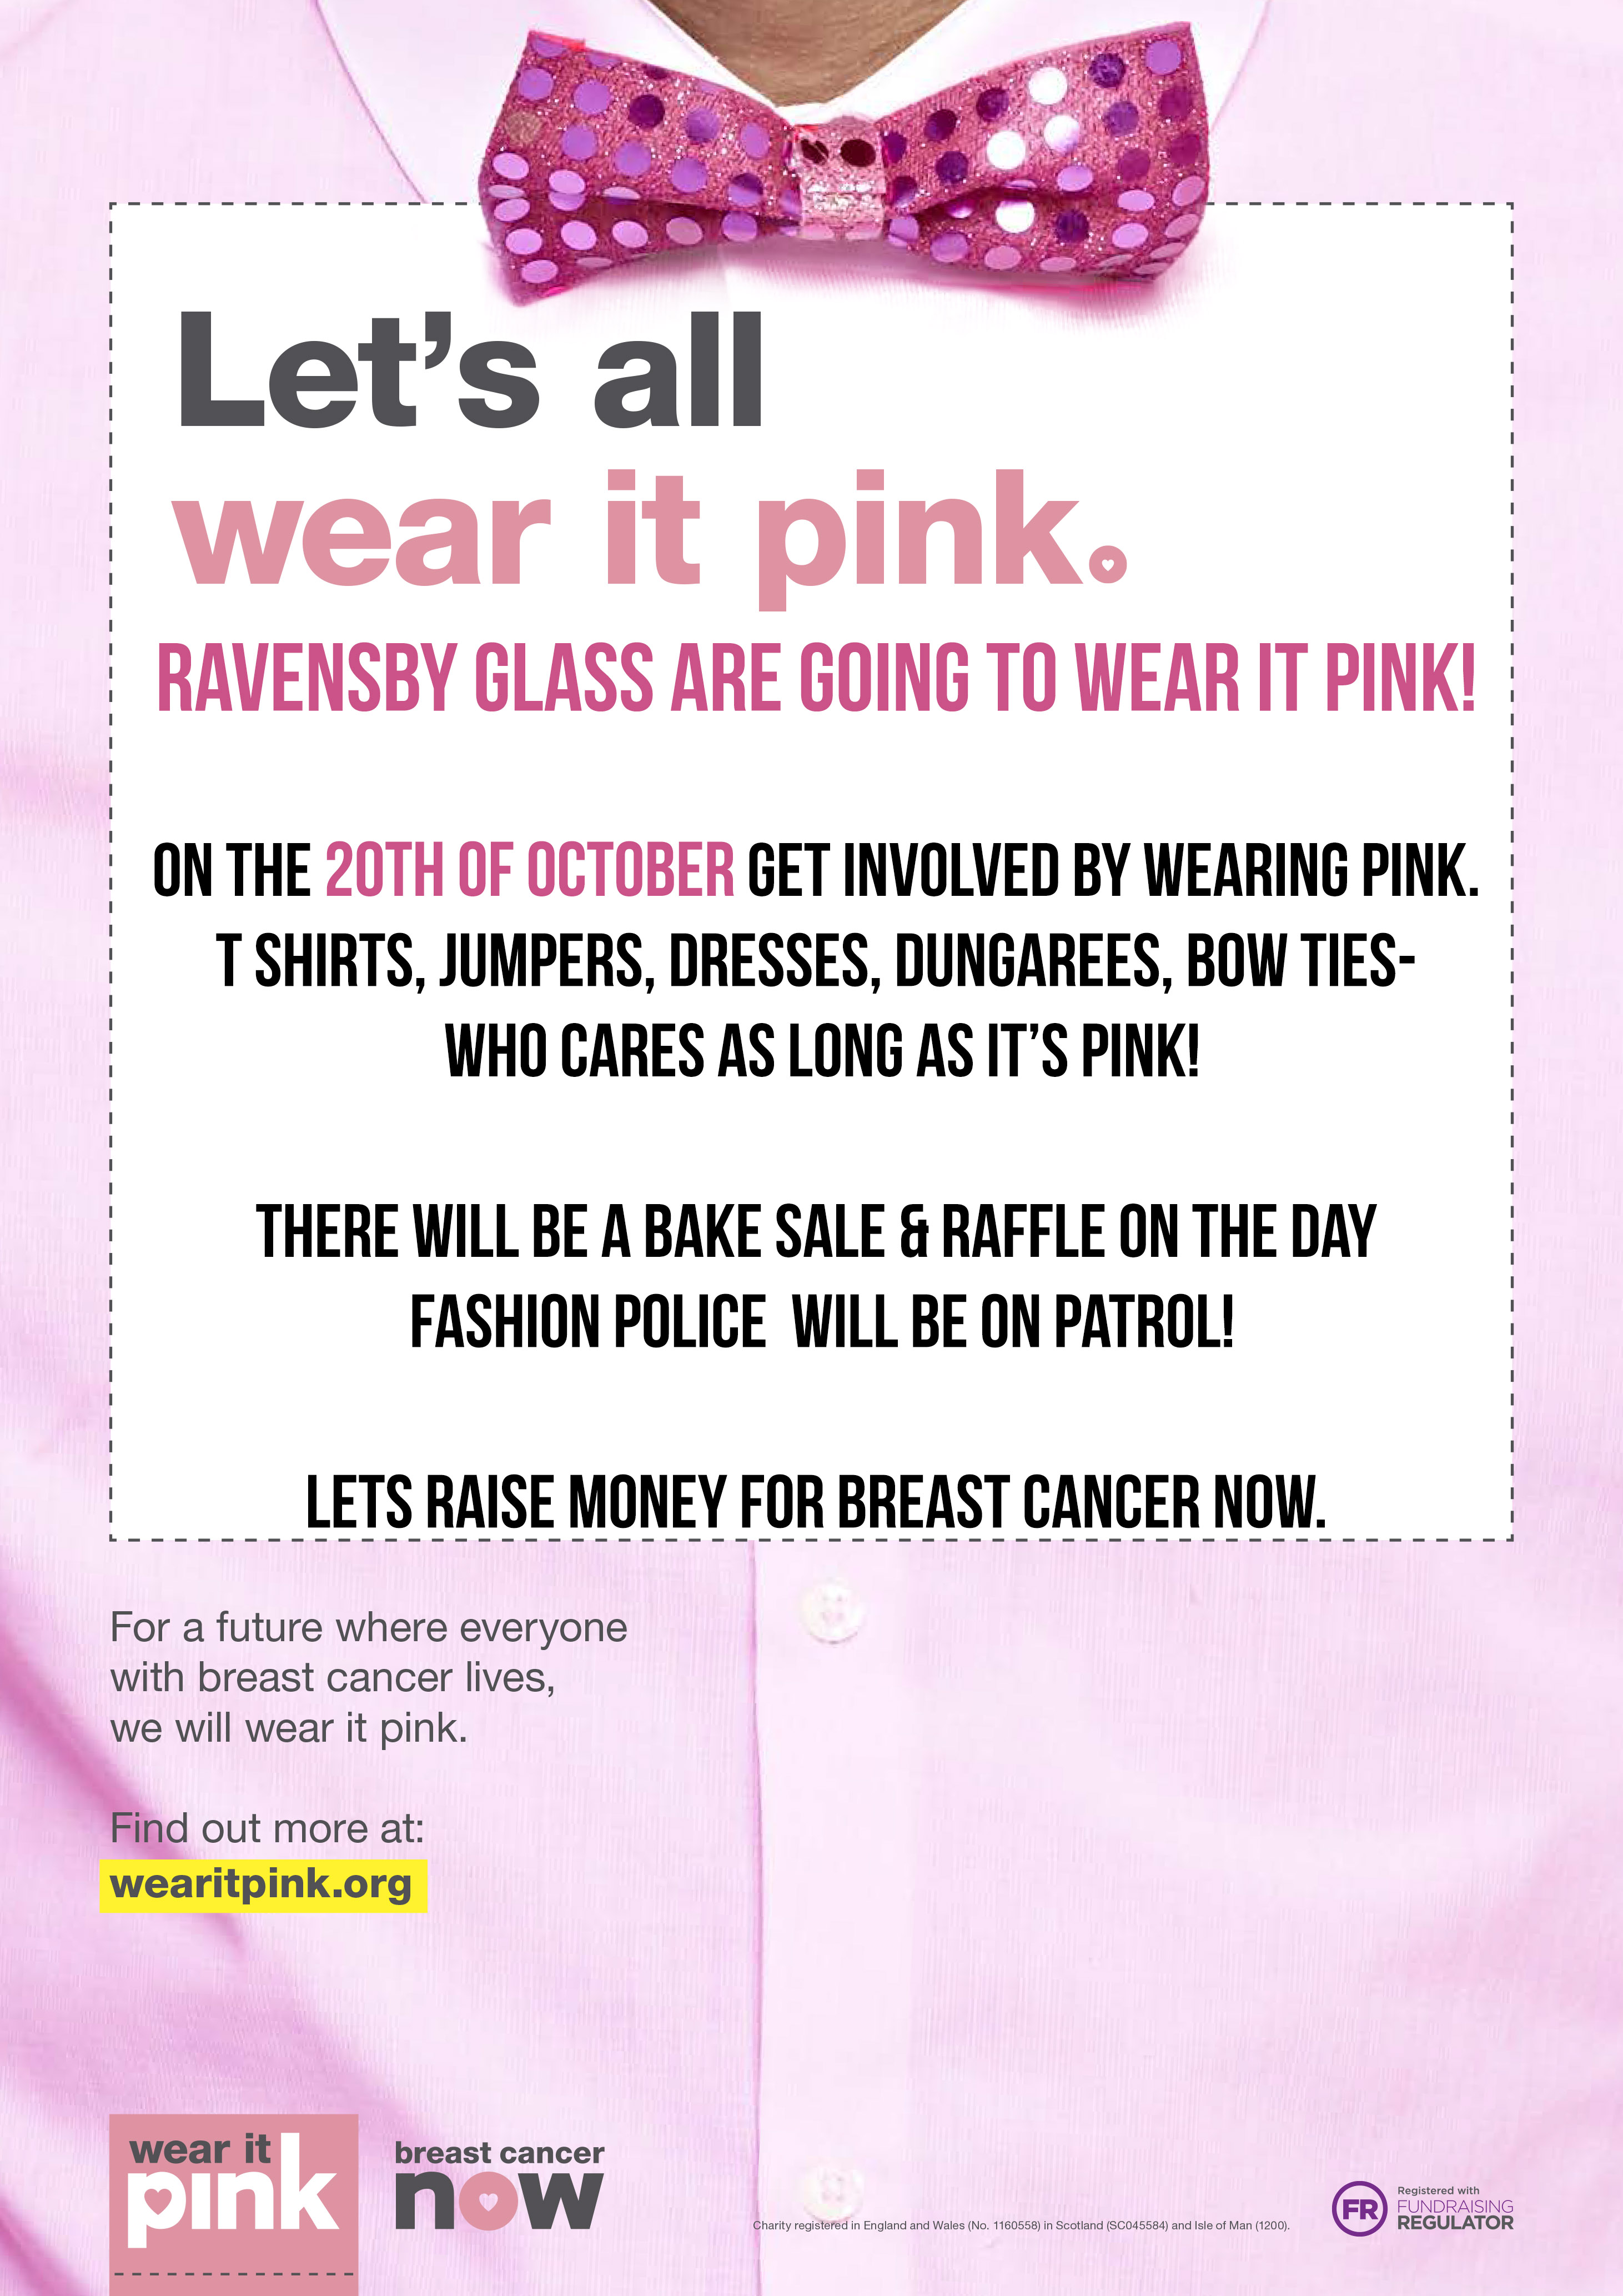 Wear It Pink 20th October 2017 Ravensby Glass Dundee